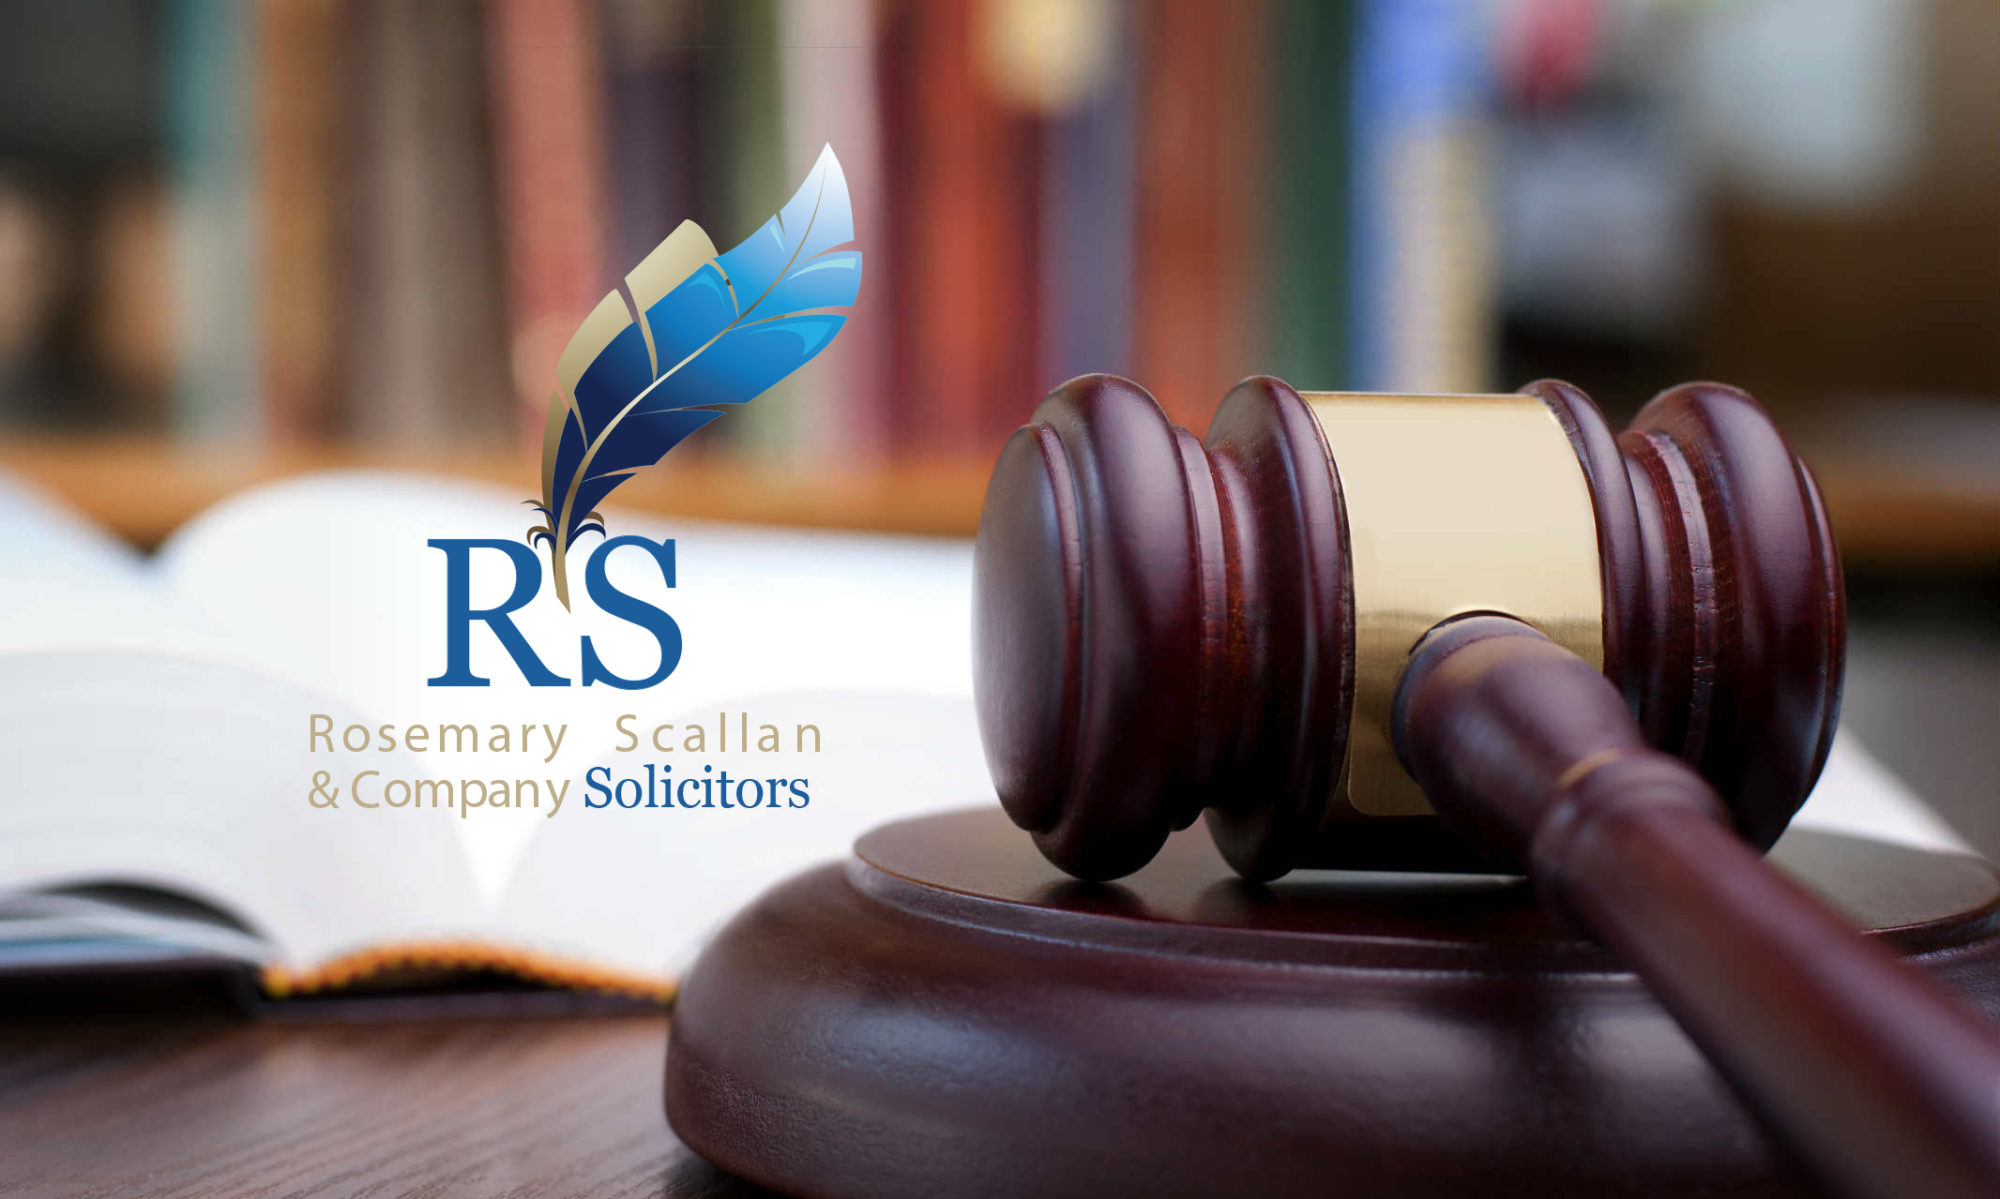 ROSEMARY SCALLAN & CO. SOLICITORS